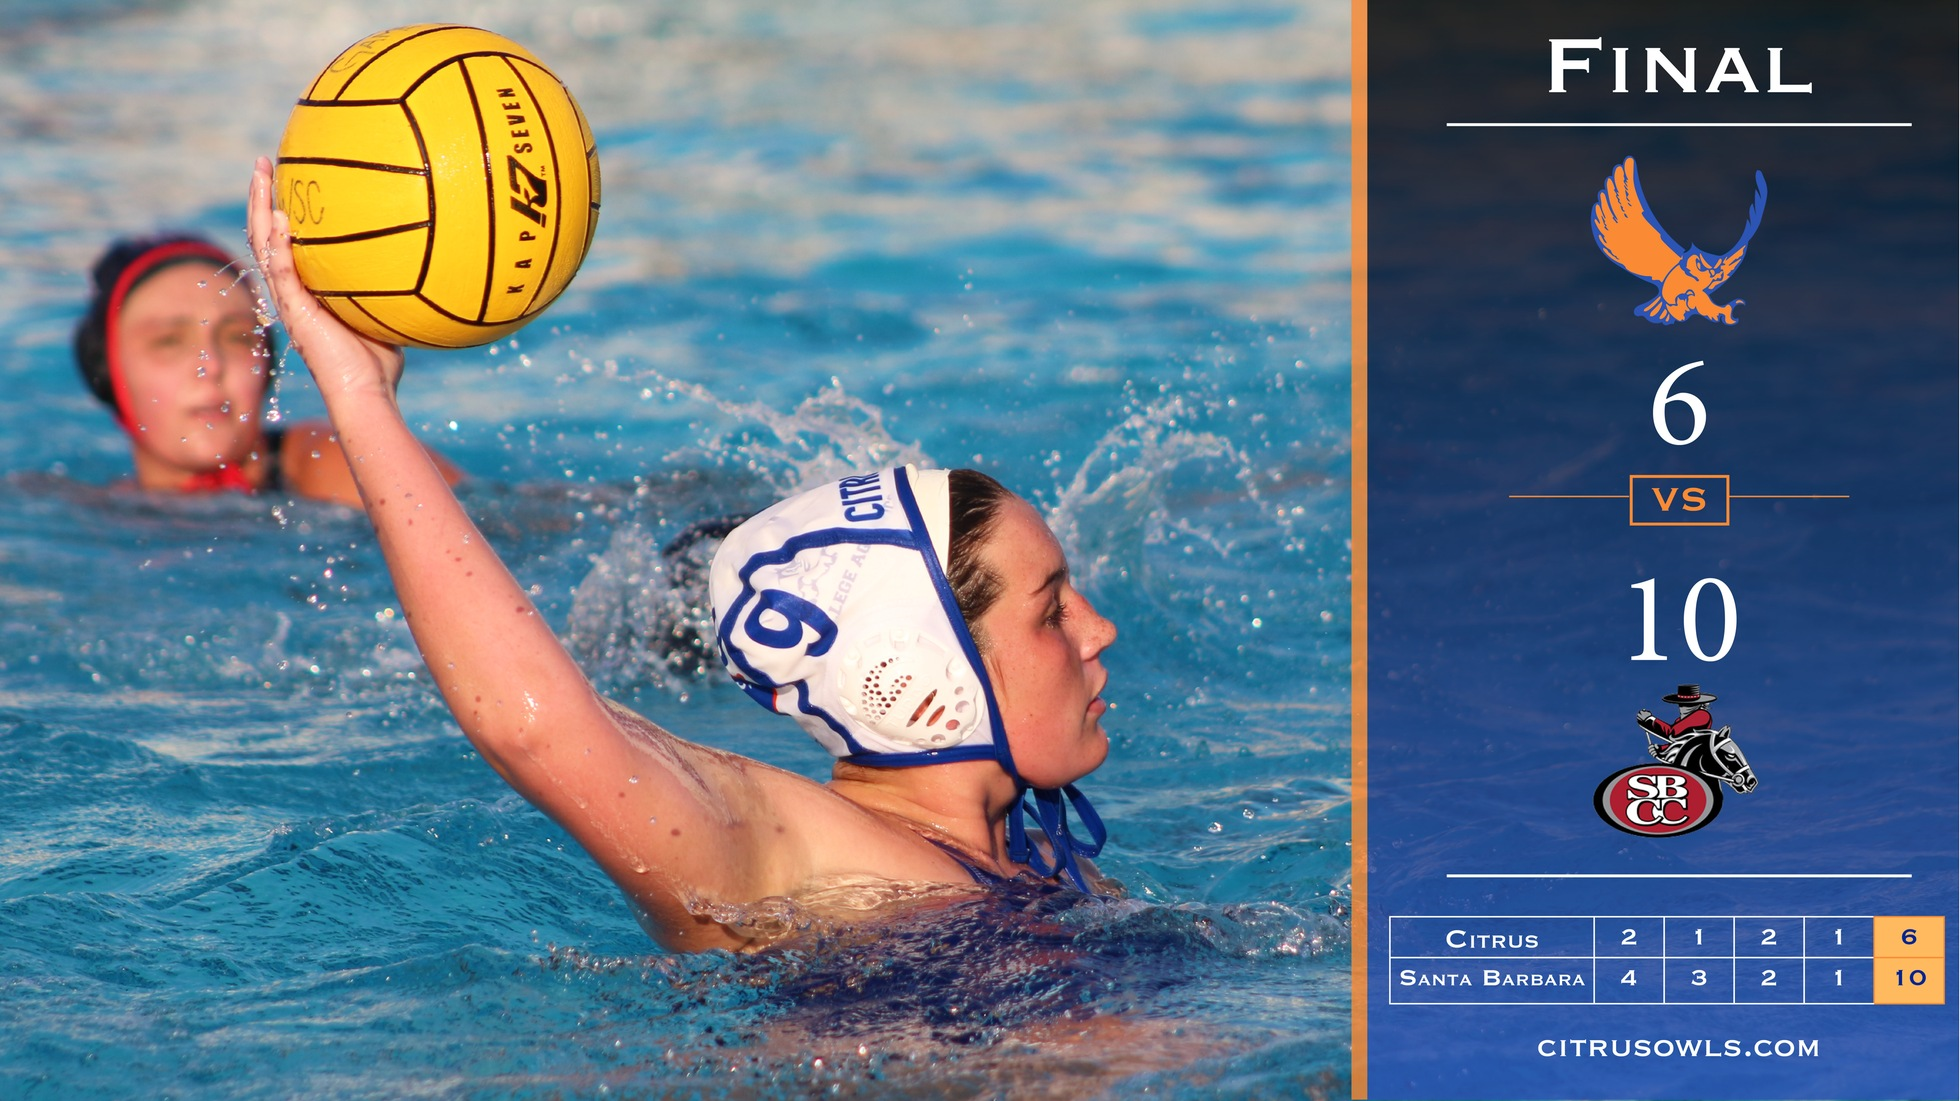 Women's Polo Comes Up Short In Conference Final Loss To Santa Barbara